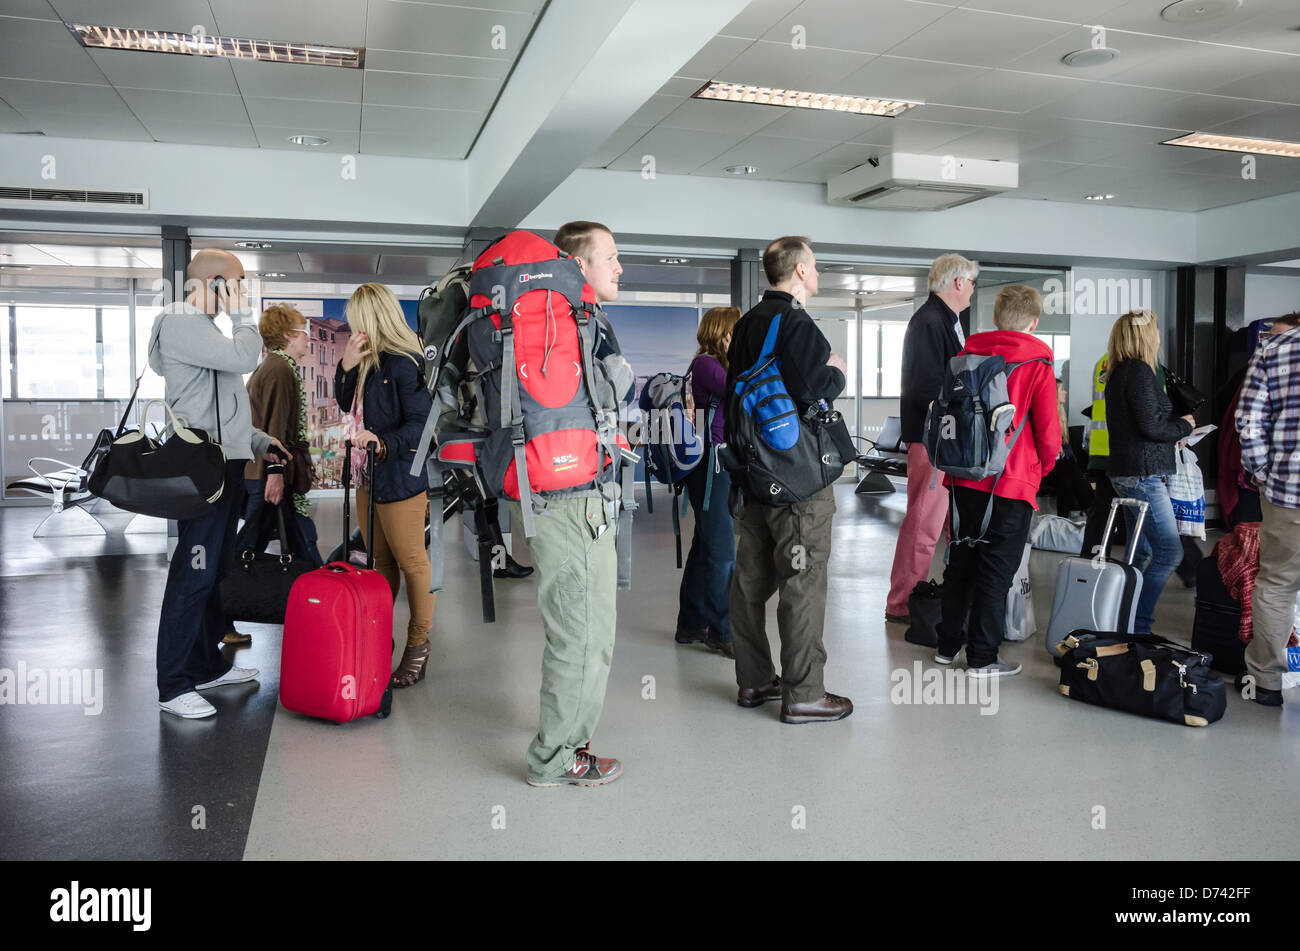 Cabin Baggage Stock Photos & Cabin Baggage Stock Images - Alamy